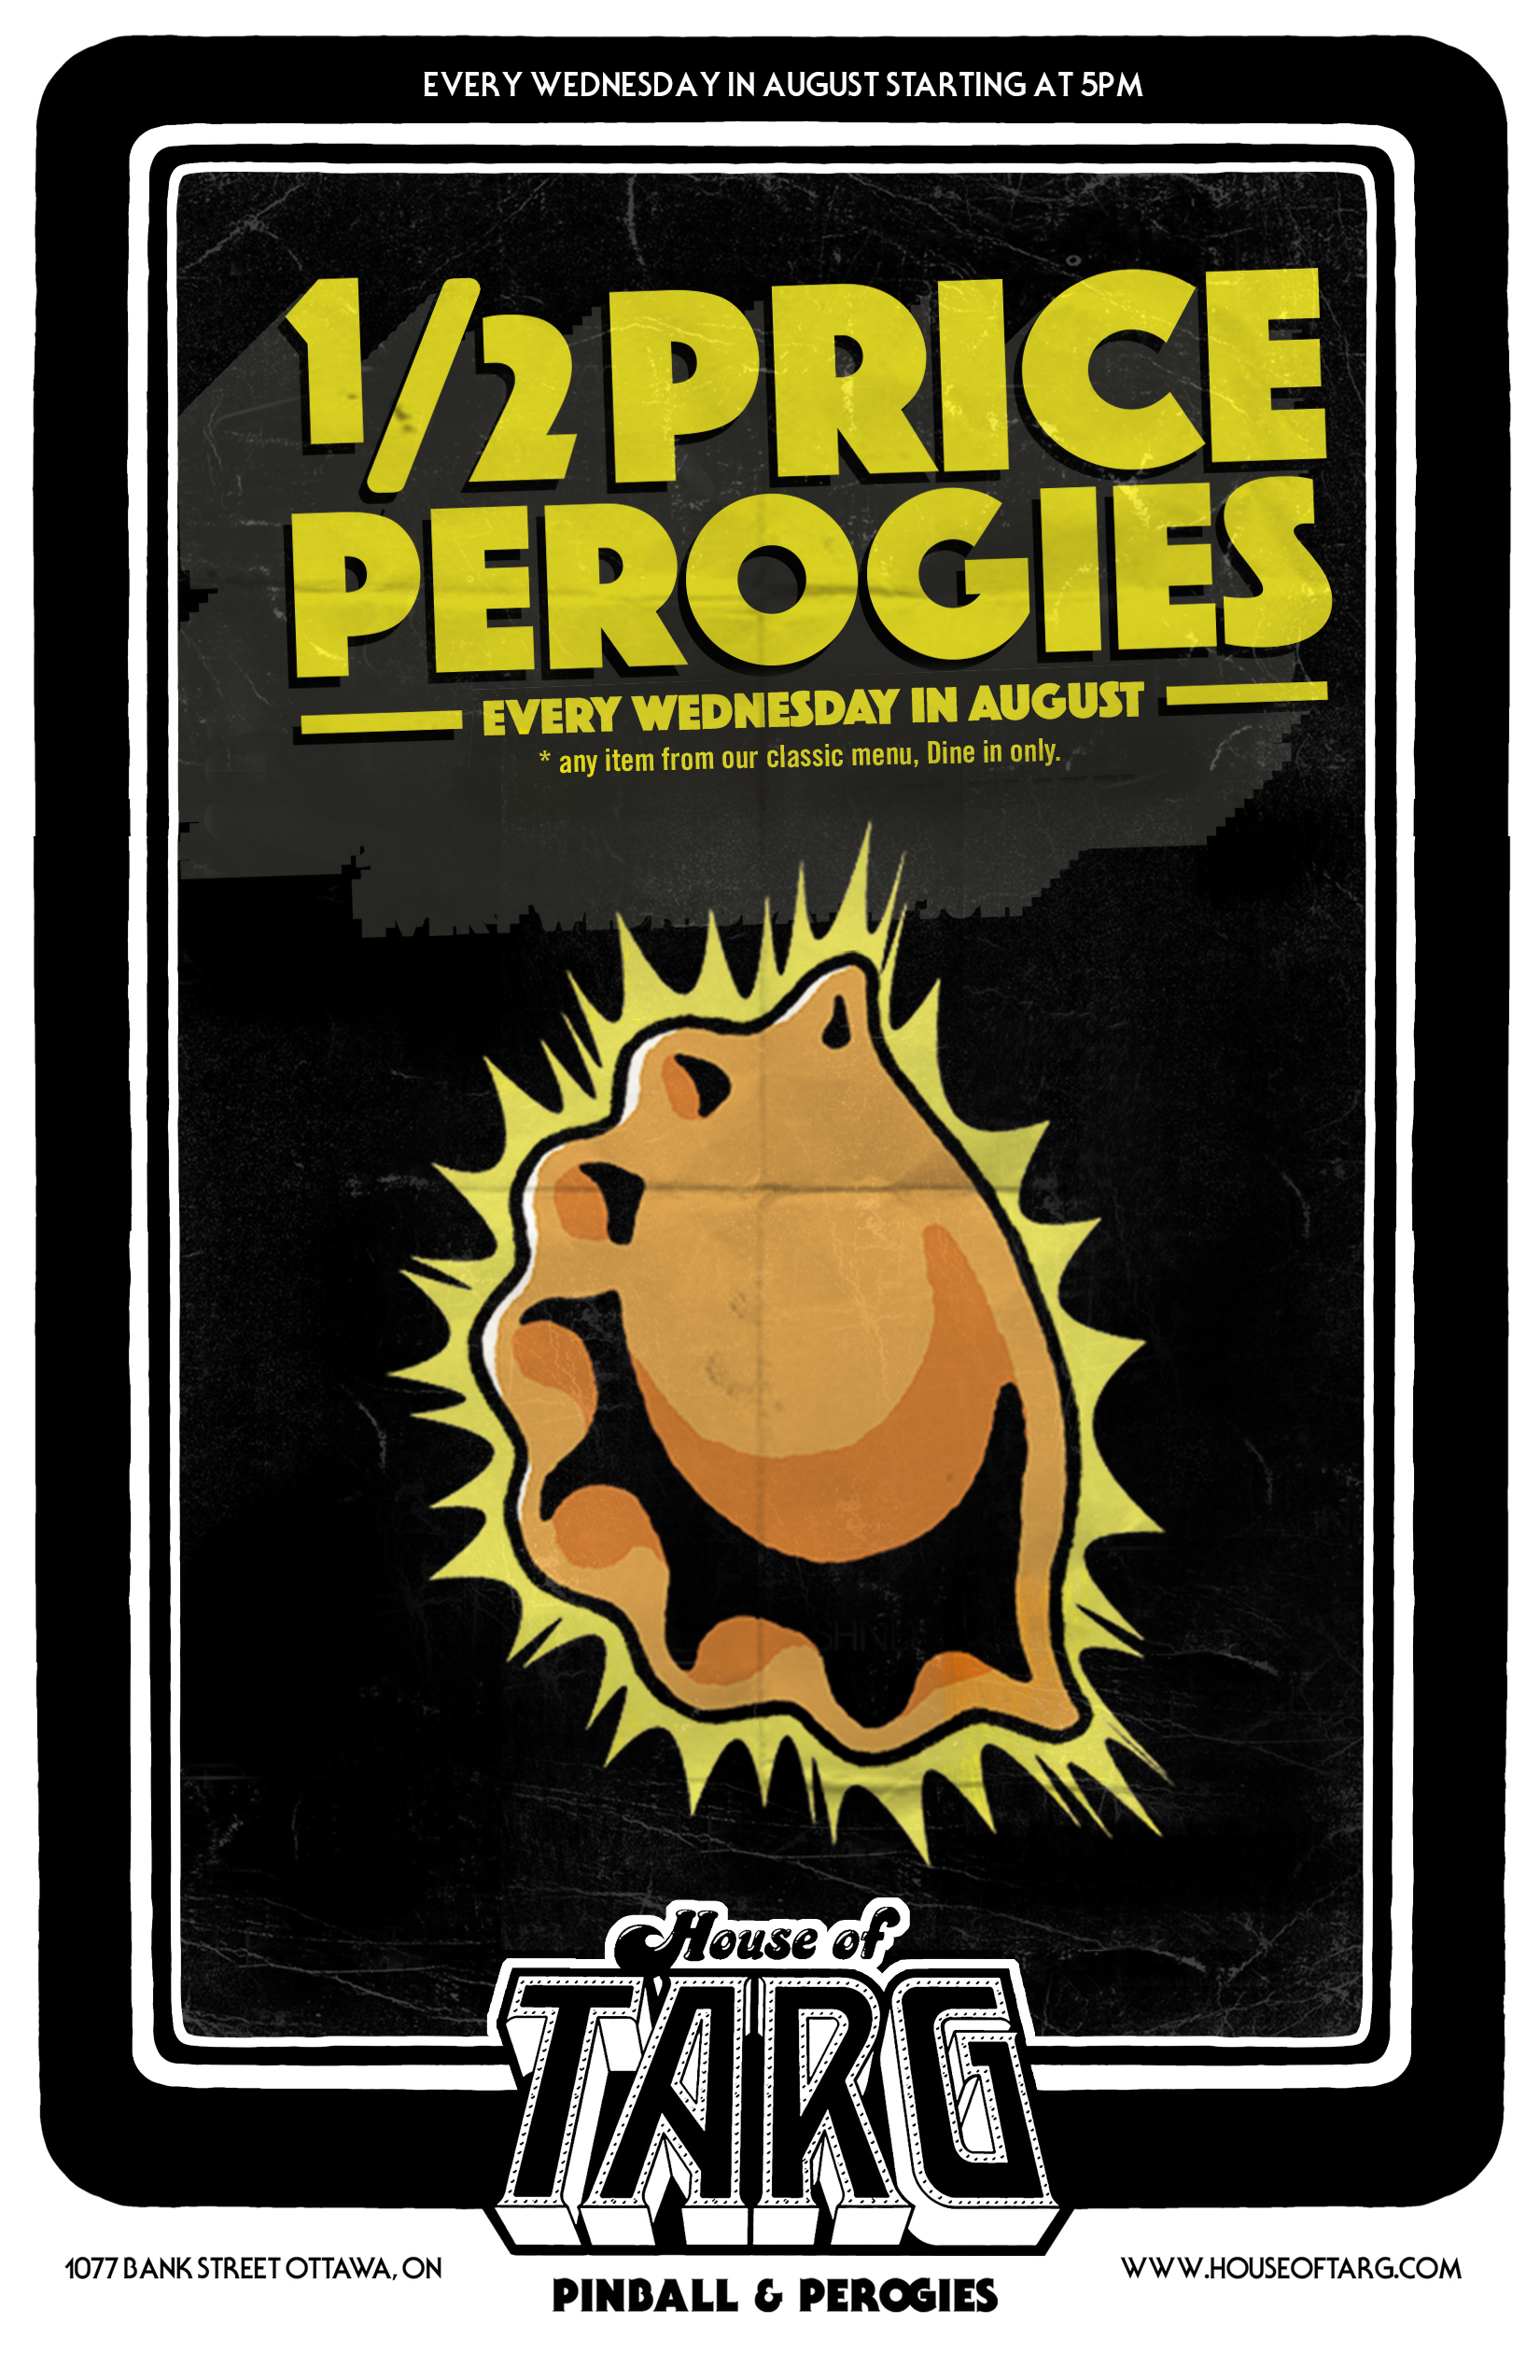 1/2 Price Perogies from our Classic Menu EVERY wed in August *Dine in only.